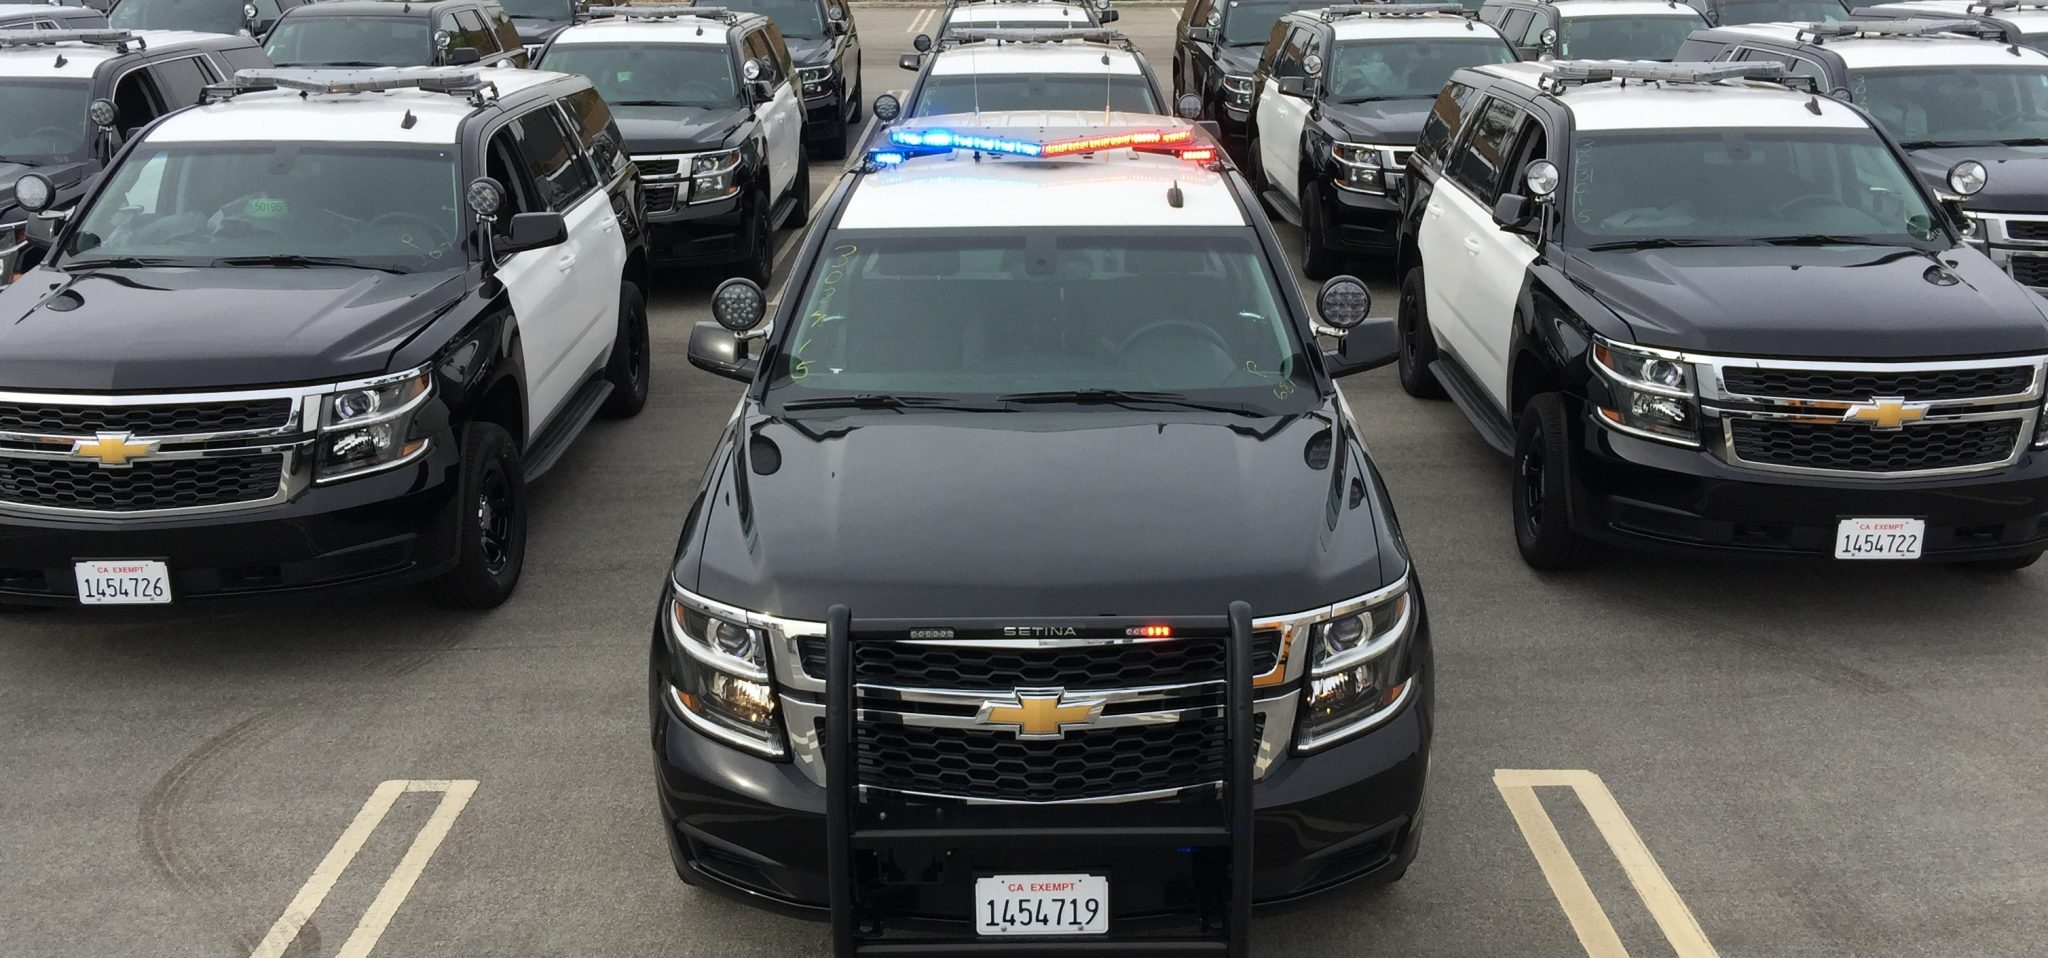 First Chevy Tahoe Ppvs Go To County Of Ventura The News